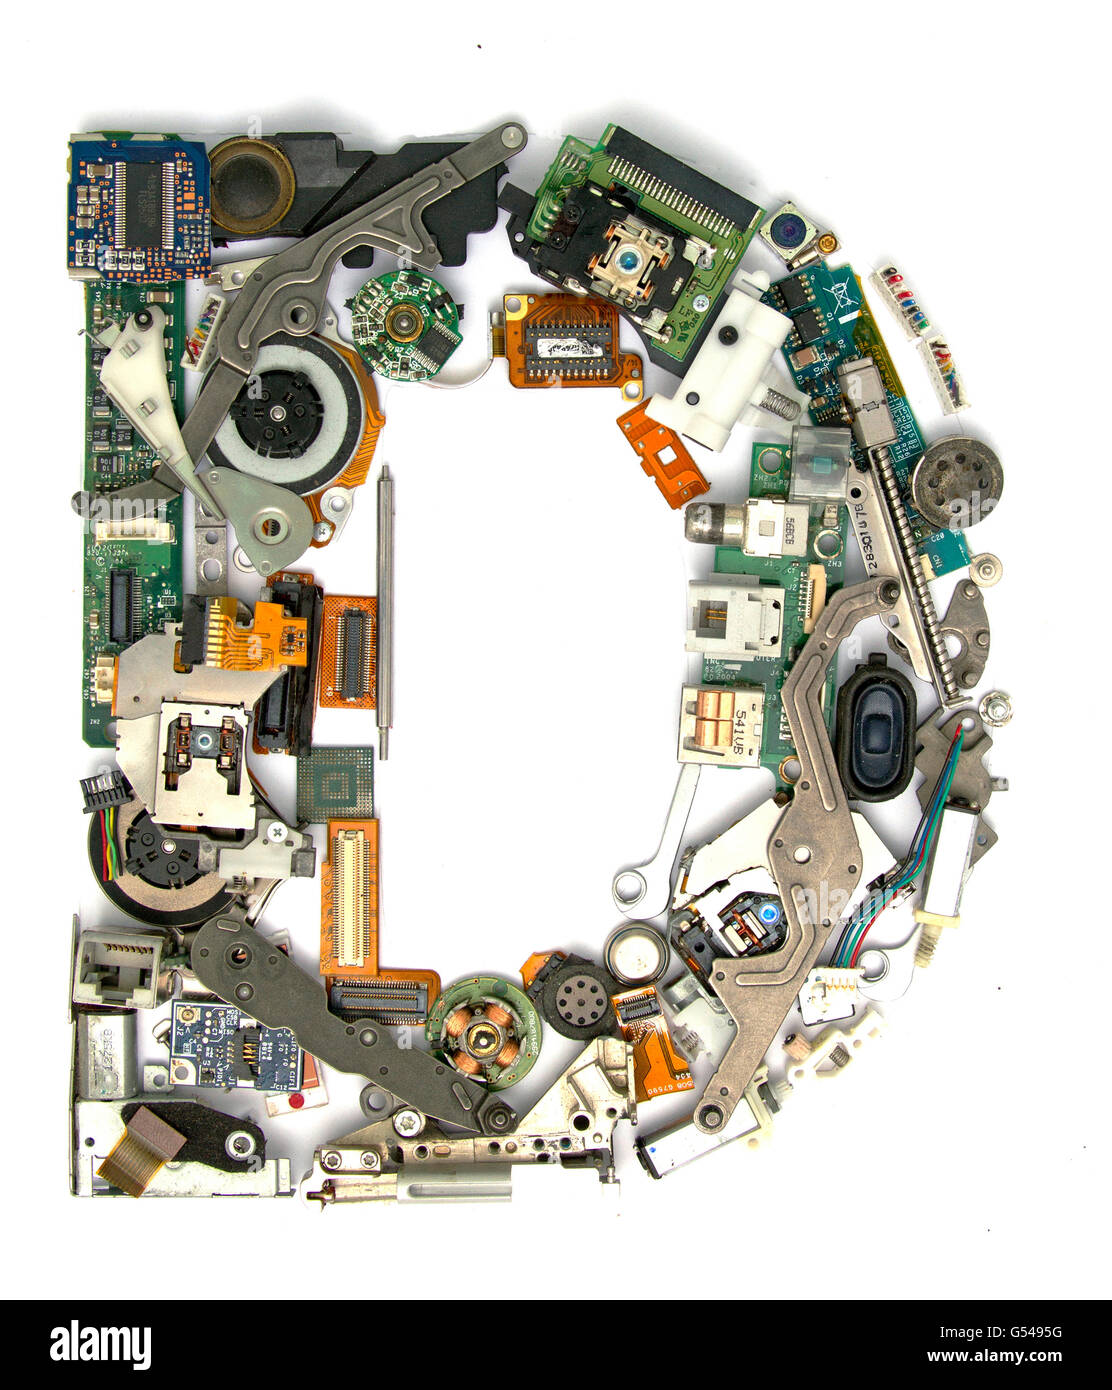 Letter Made Out Of Objects.Typography Made From Objects Stock Photos Typography Made From